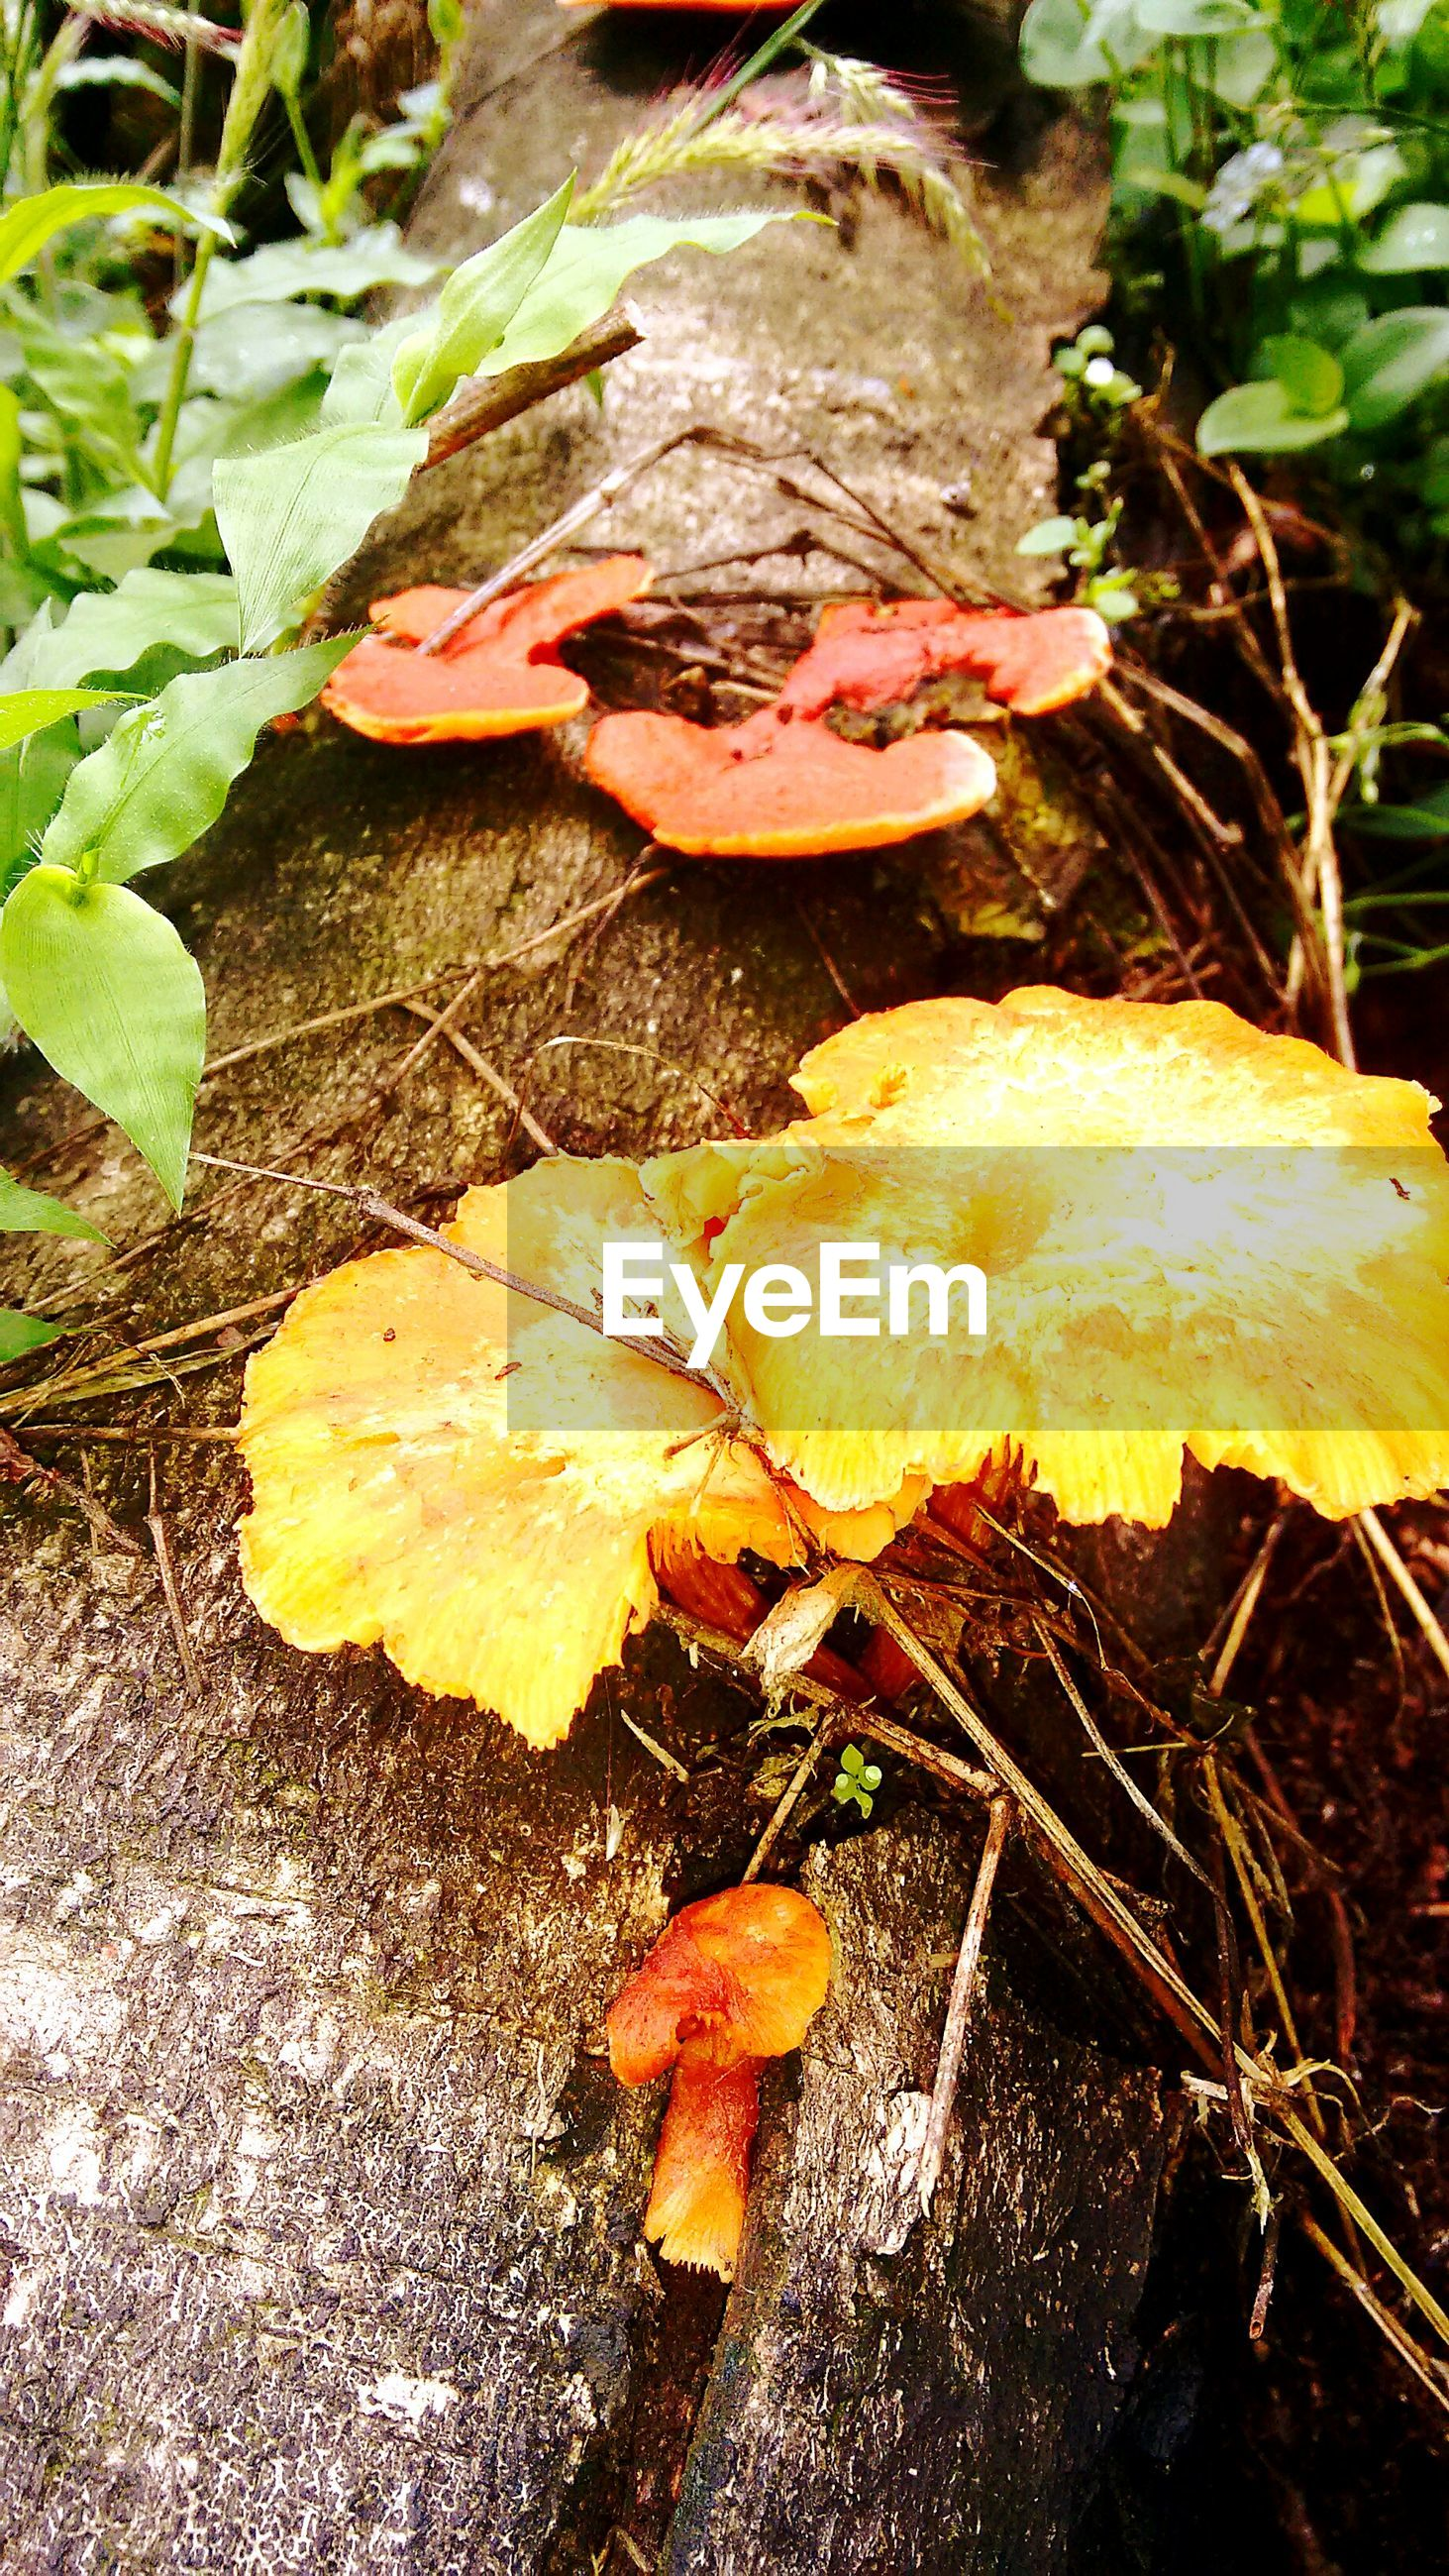 leaf, nature, fragility, close-up, dry, fungus, autumn, change, fallen, high angle view, mushroom, season, freshness, wet, plant, leaves, day, ground, growth, outdoors